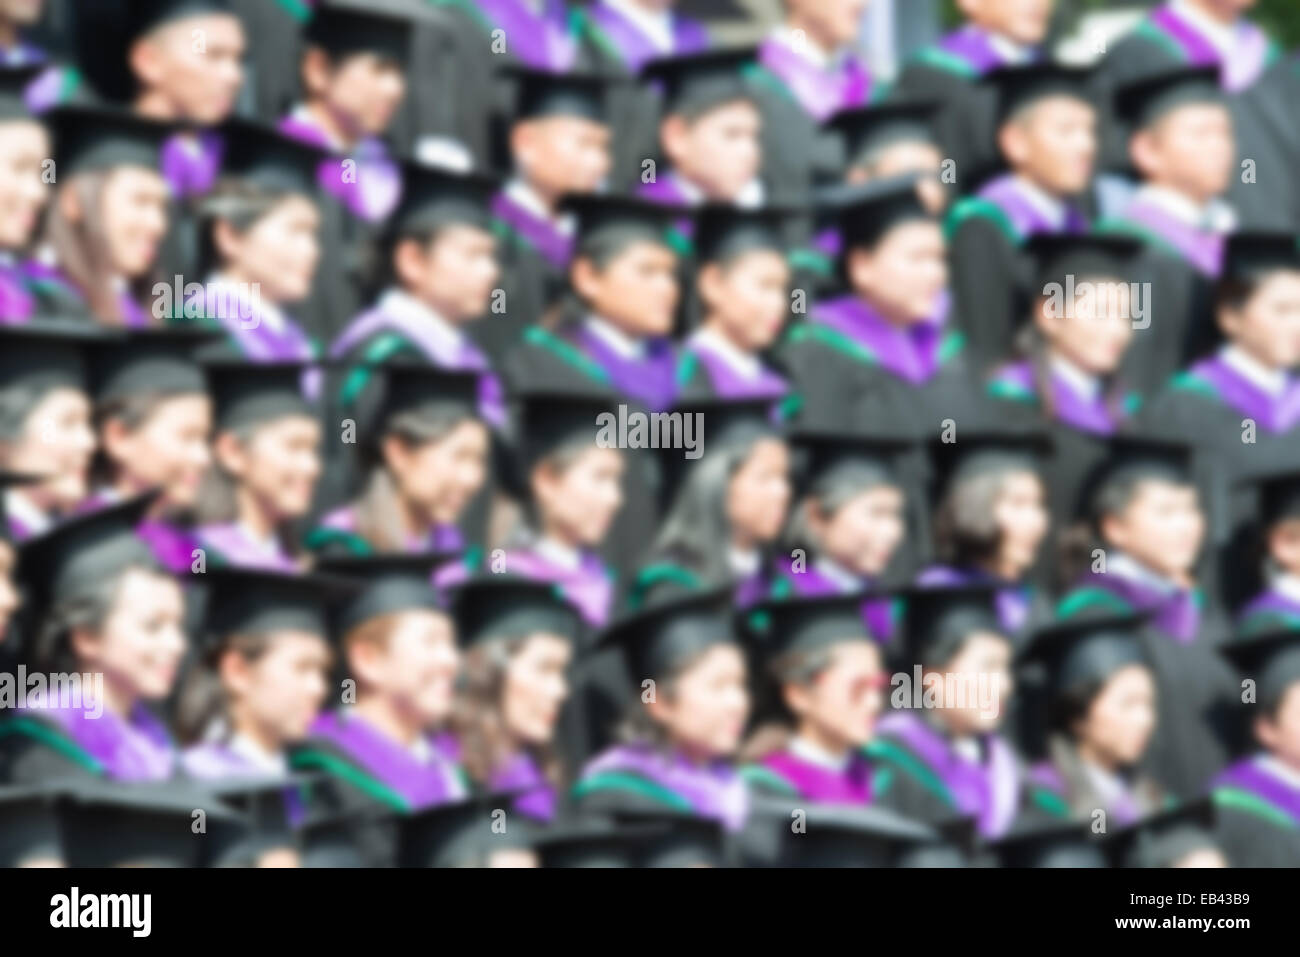 Shot of graduation caps during commencement. The image was blurred for use as a background. - Stock Image